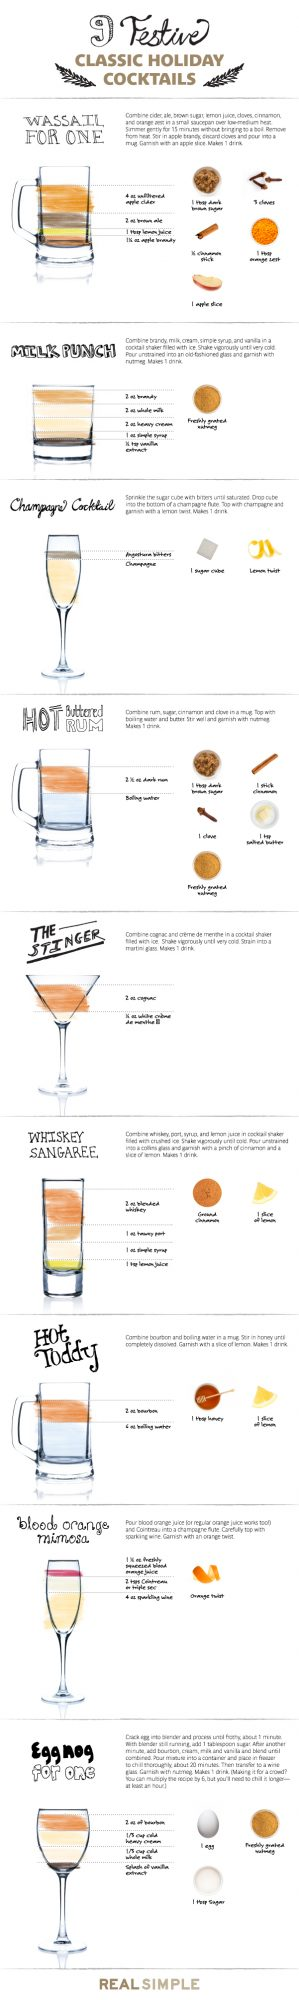 Classic Holiday Cocktails